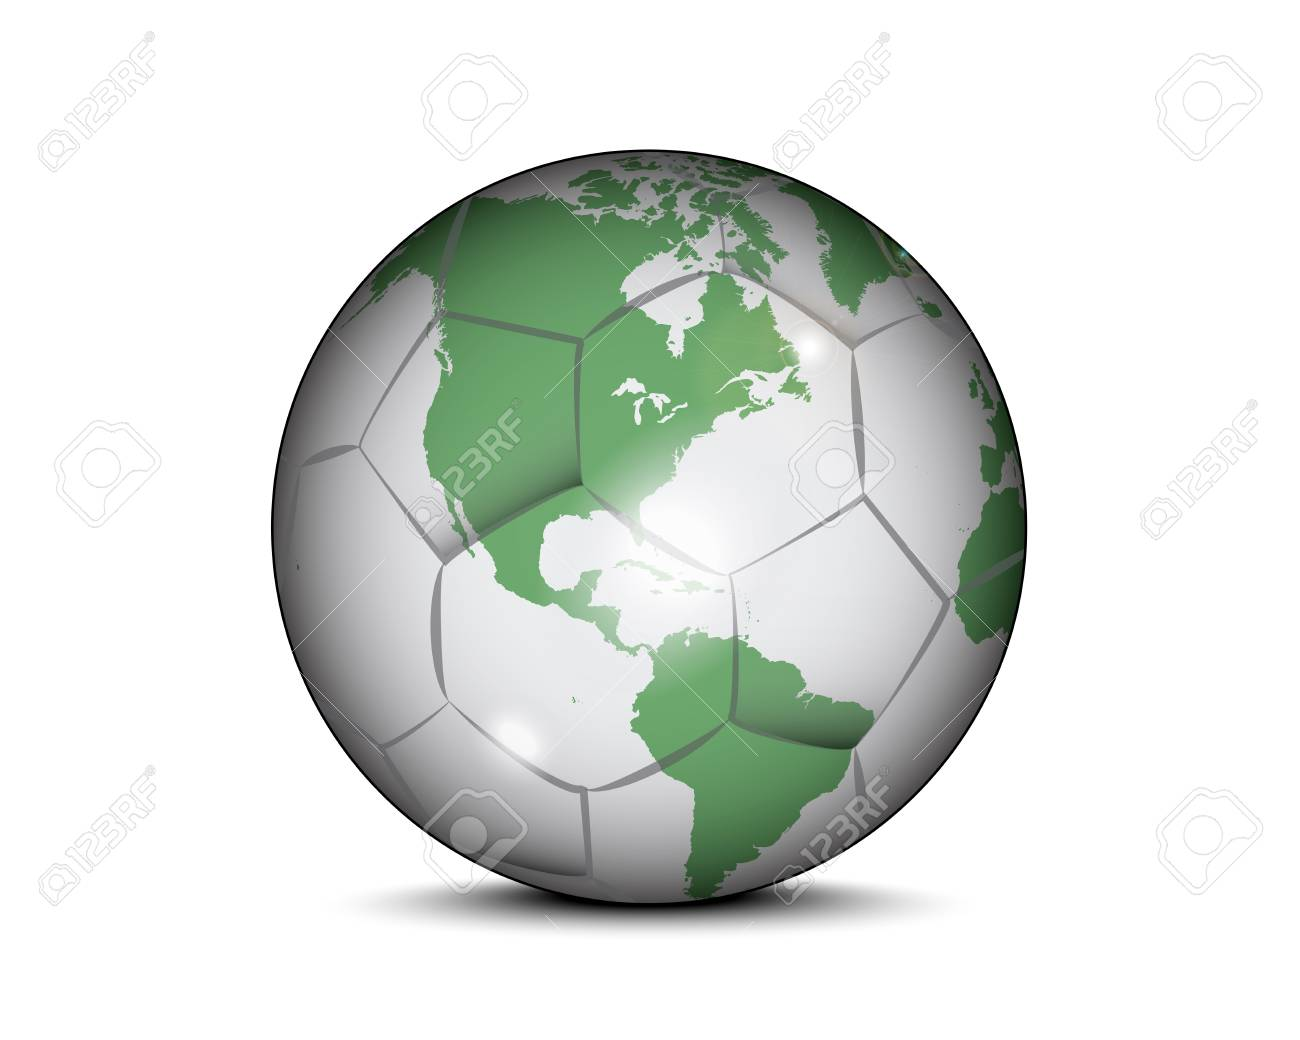 Soccer ball with world map royalty free cliparts vectors and stock soccer ball with world map stock vector 52399503 gumiabroncs Gallery